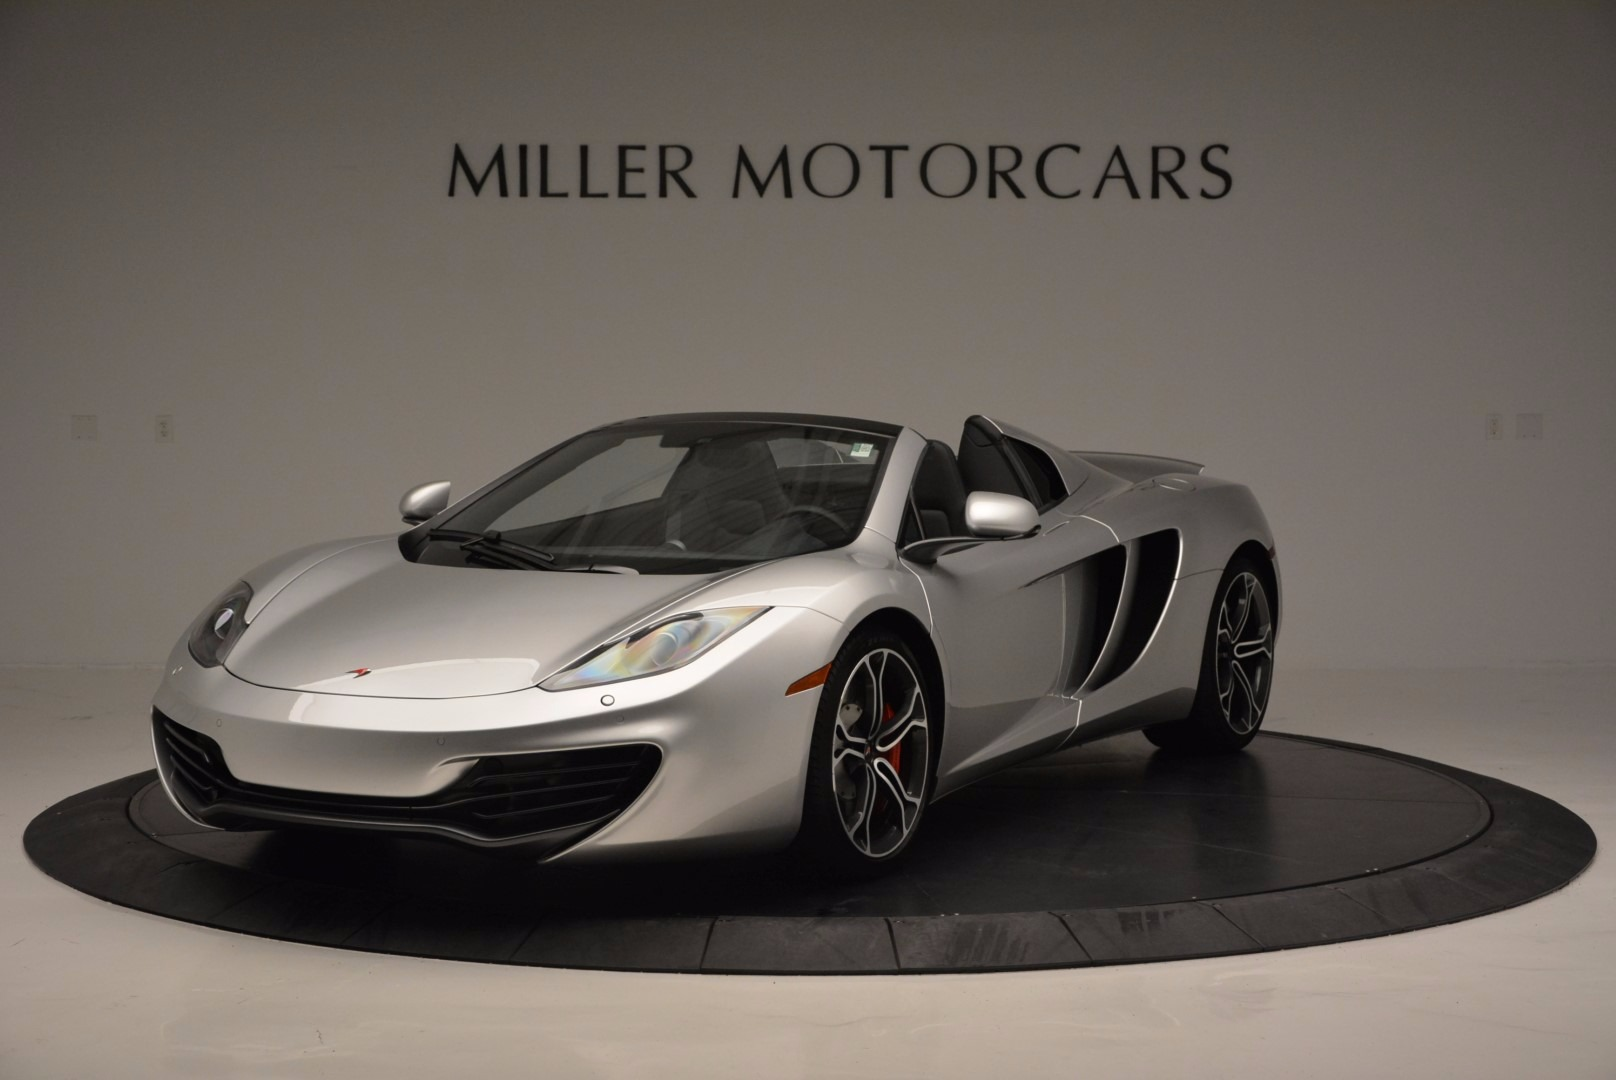 Used 2014 McLaren MP4-12C Spider for sale Sold at Pagani of Greenwich in Greenwich CT 06830 1